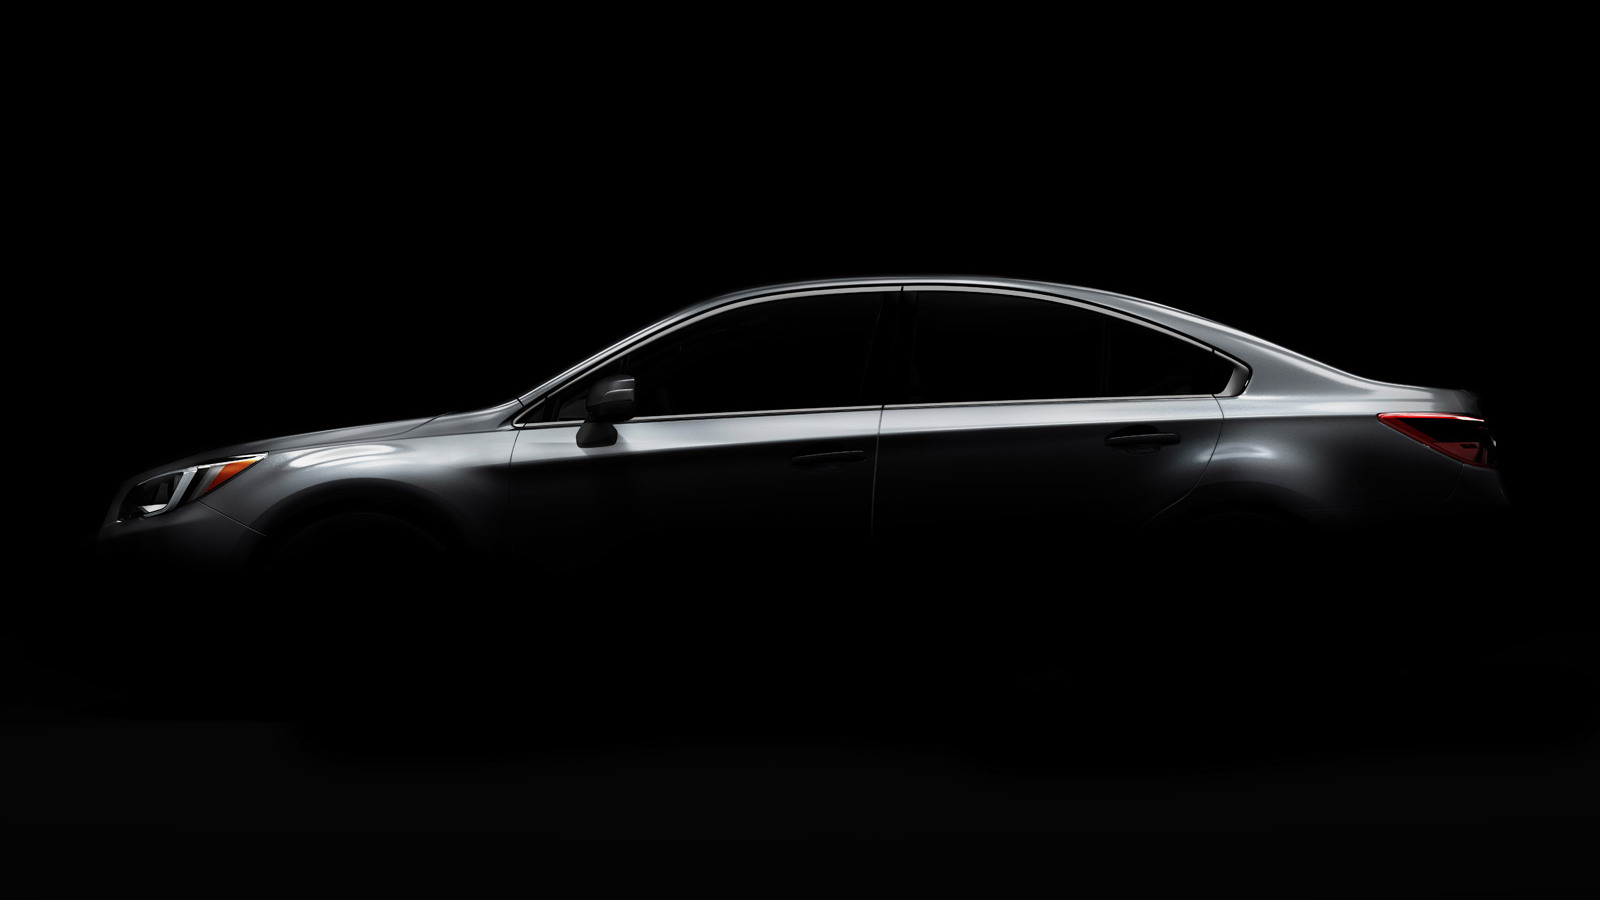 Teaser for 2015 Subaru Legacy